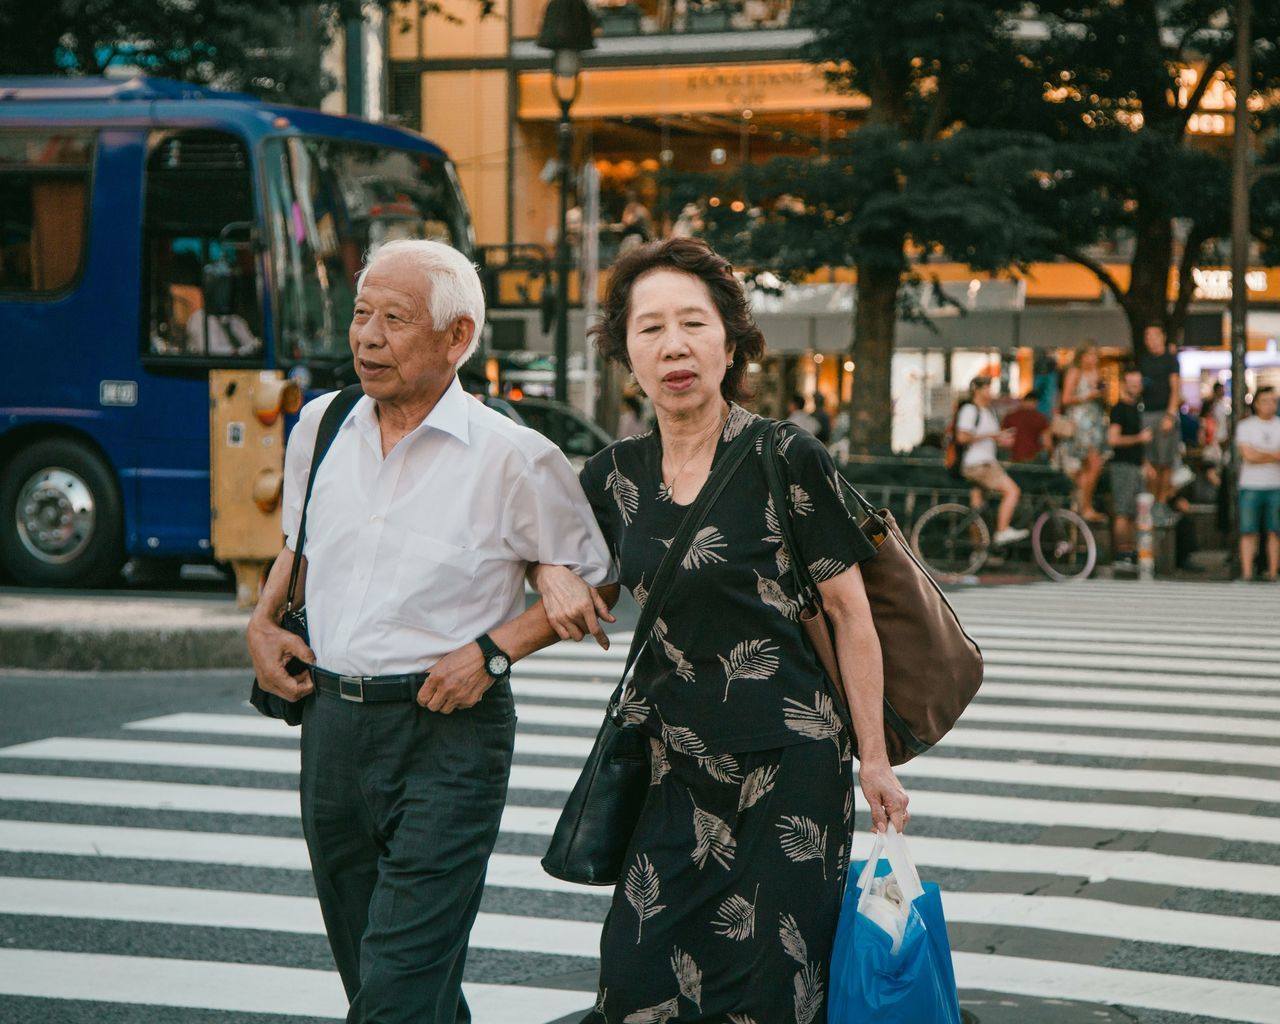 happy valentine's day! Love Old Love Togetherness Happiness Street Real People Senior Couple Couple City Smiling Portraits Of EyeEm Portrait Photography Faces Of EyeEm Street Photography Tokyo Street Photography Tokyo Japan